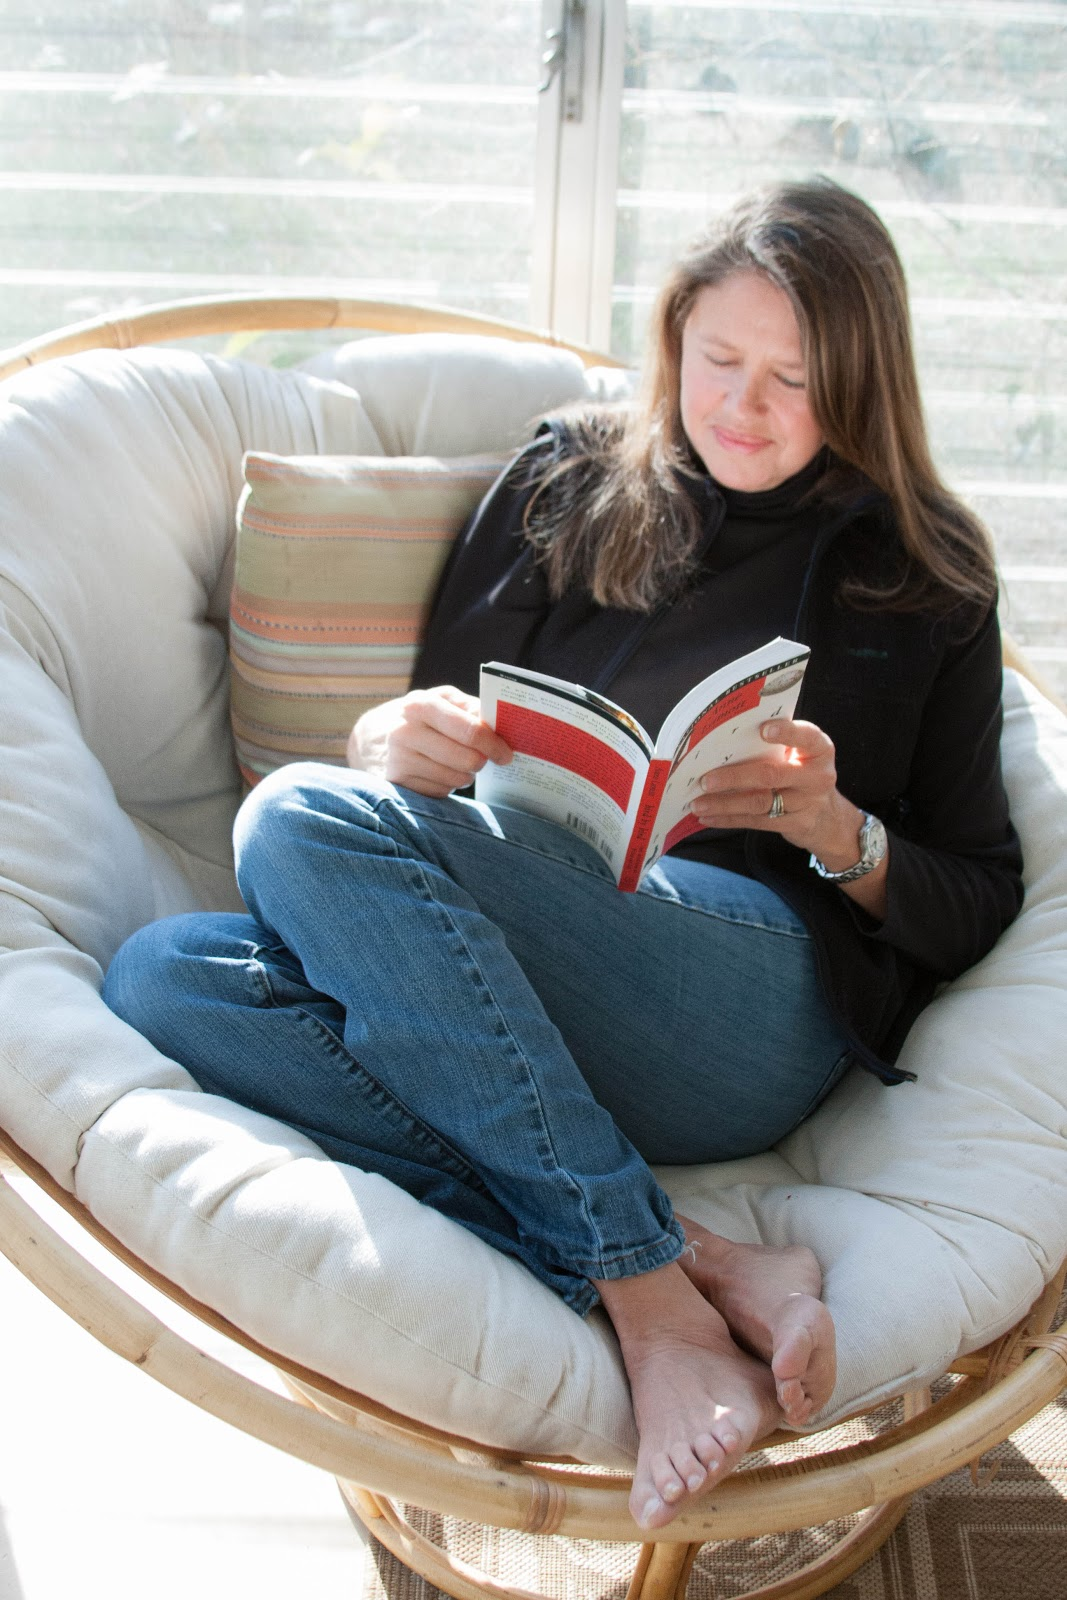 Barefoot Woman Reading In A Papasan Chair